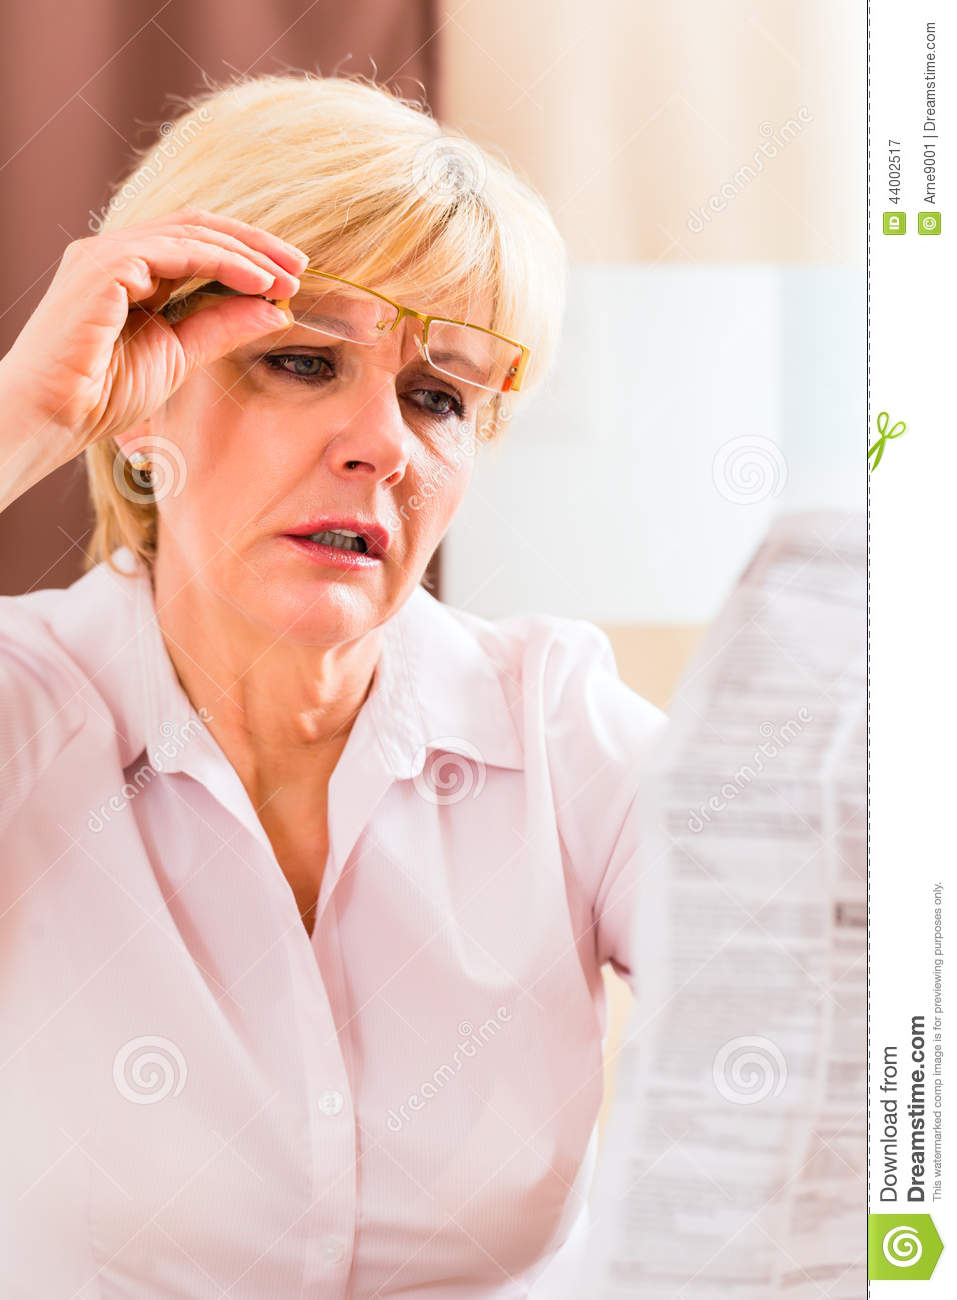 Image result for presbyopia stock photo